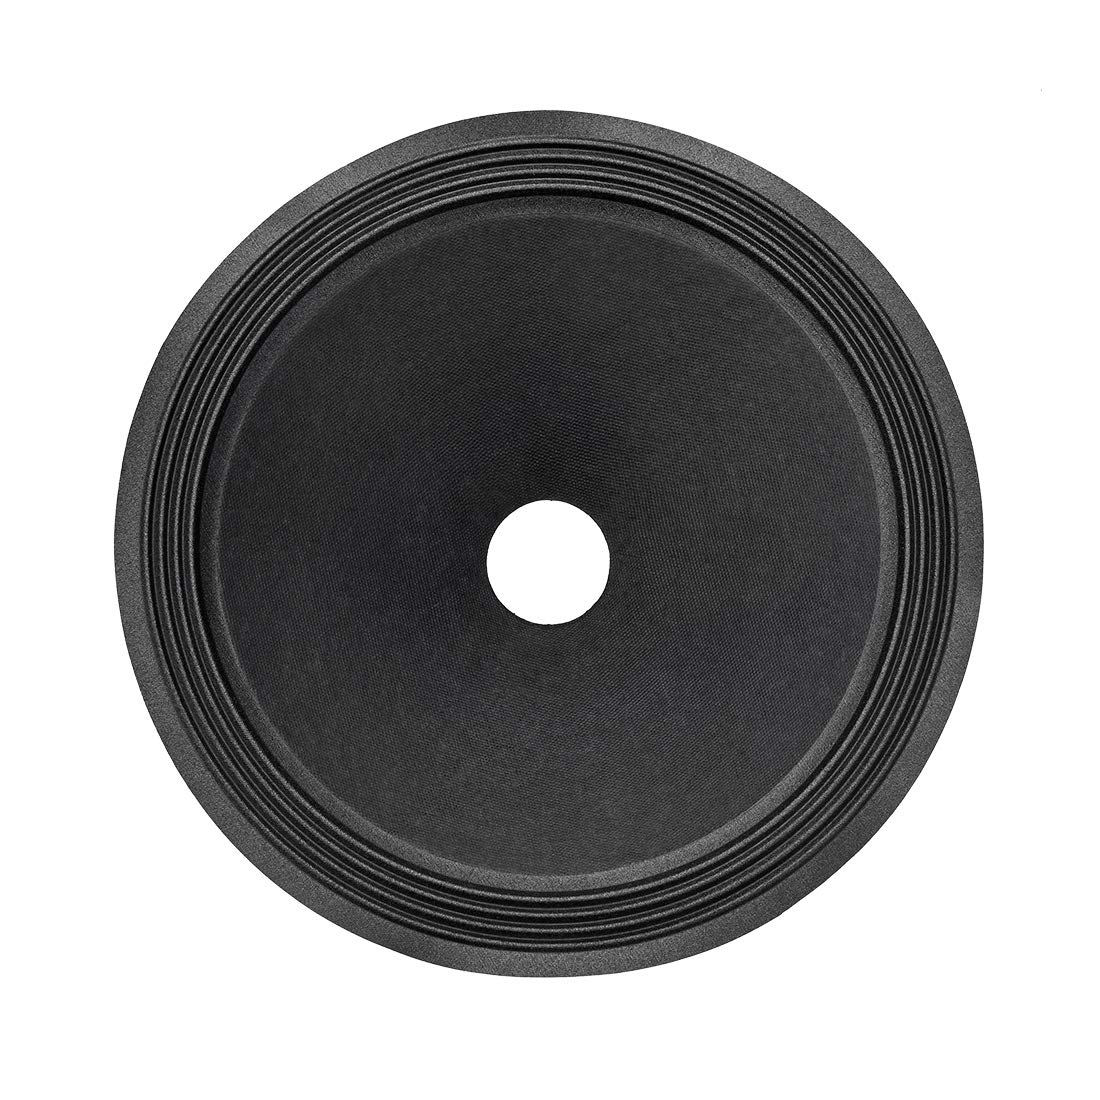 uxcell 12'' Paper Speaker Cone Subwoofer Drum Paper 1.7'' Coil Diameter with 4 Cloth Surround